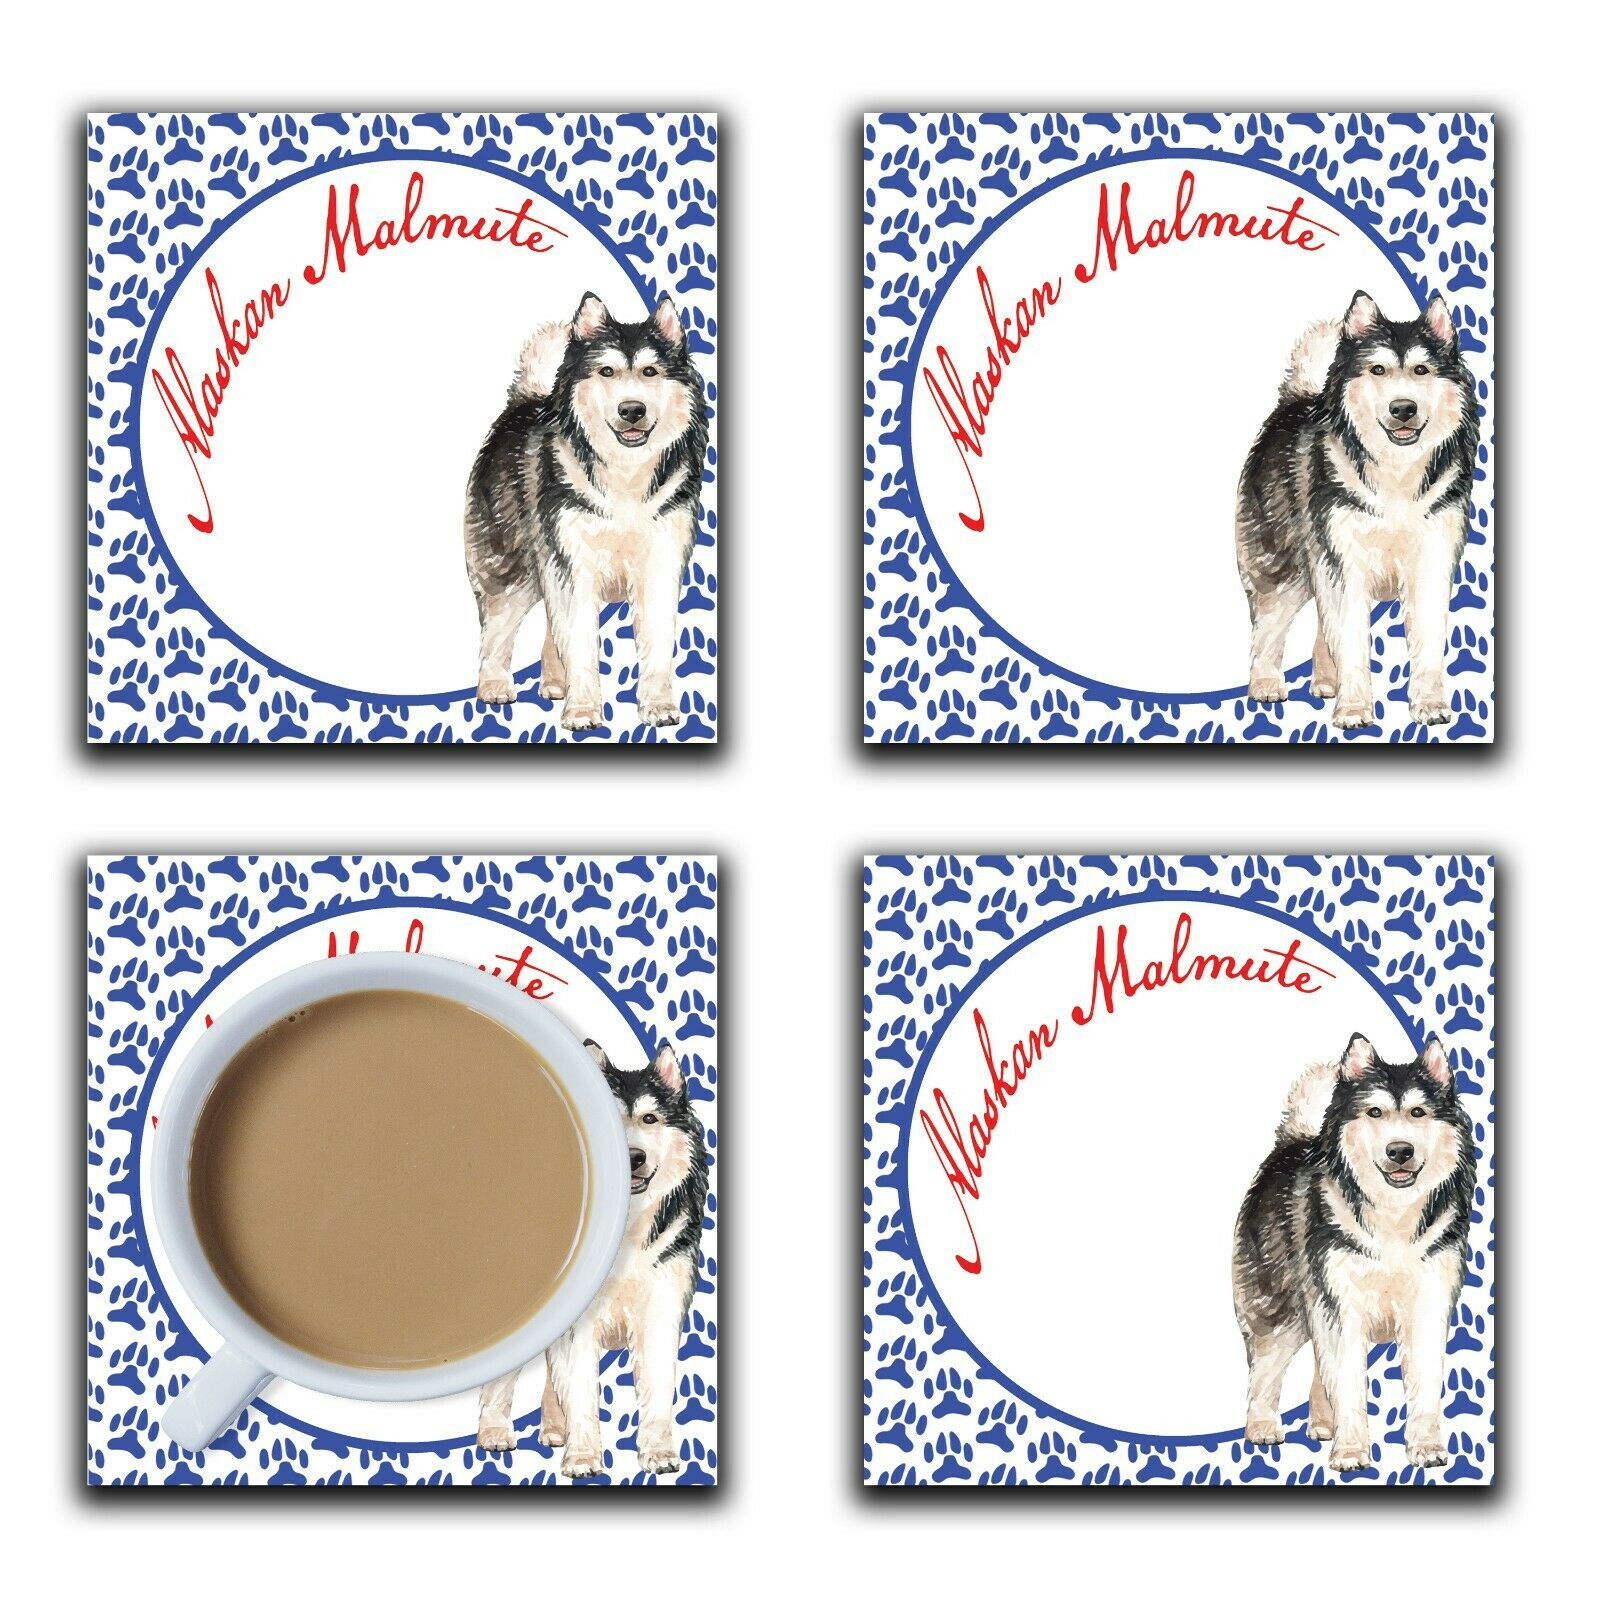 Embossi Printed Alaskan Malmute, wood or ceramic tile, set of 4 Dog Coasters